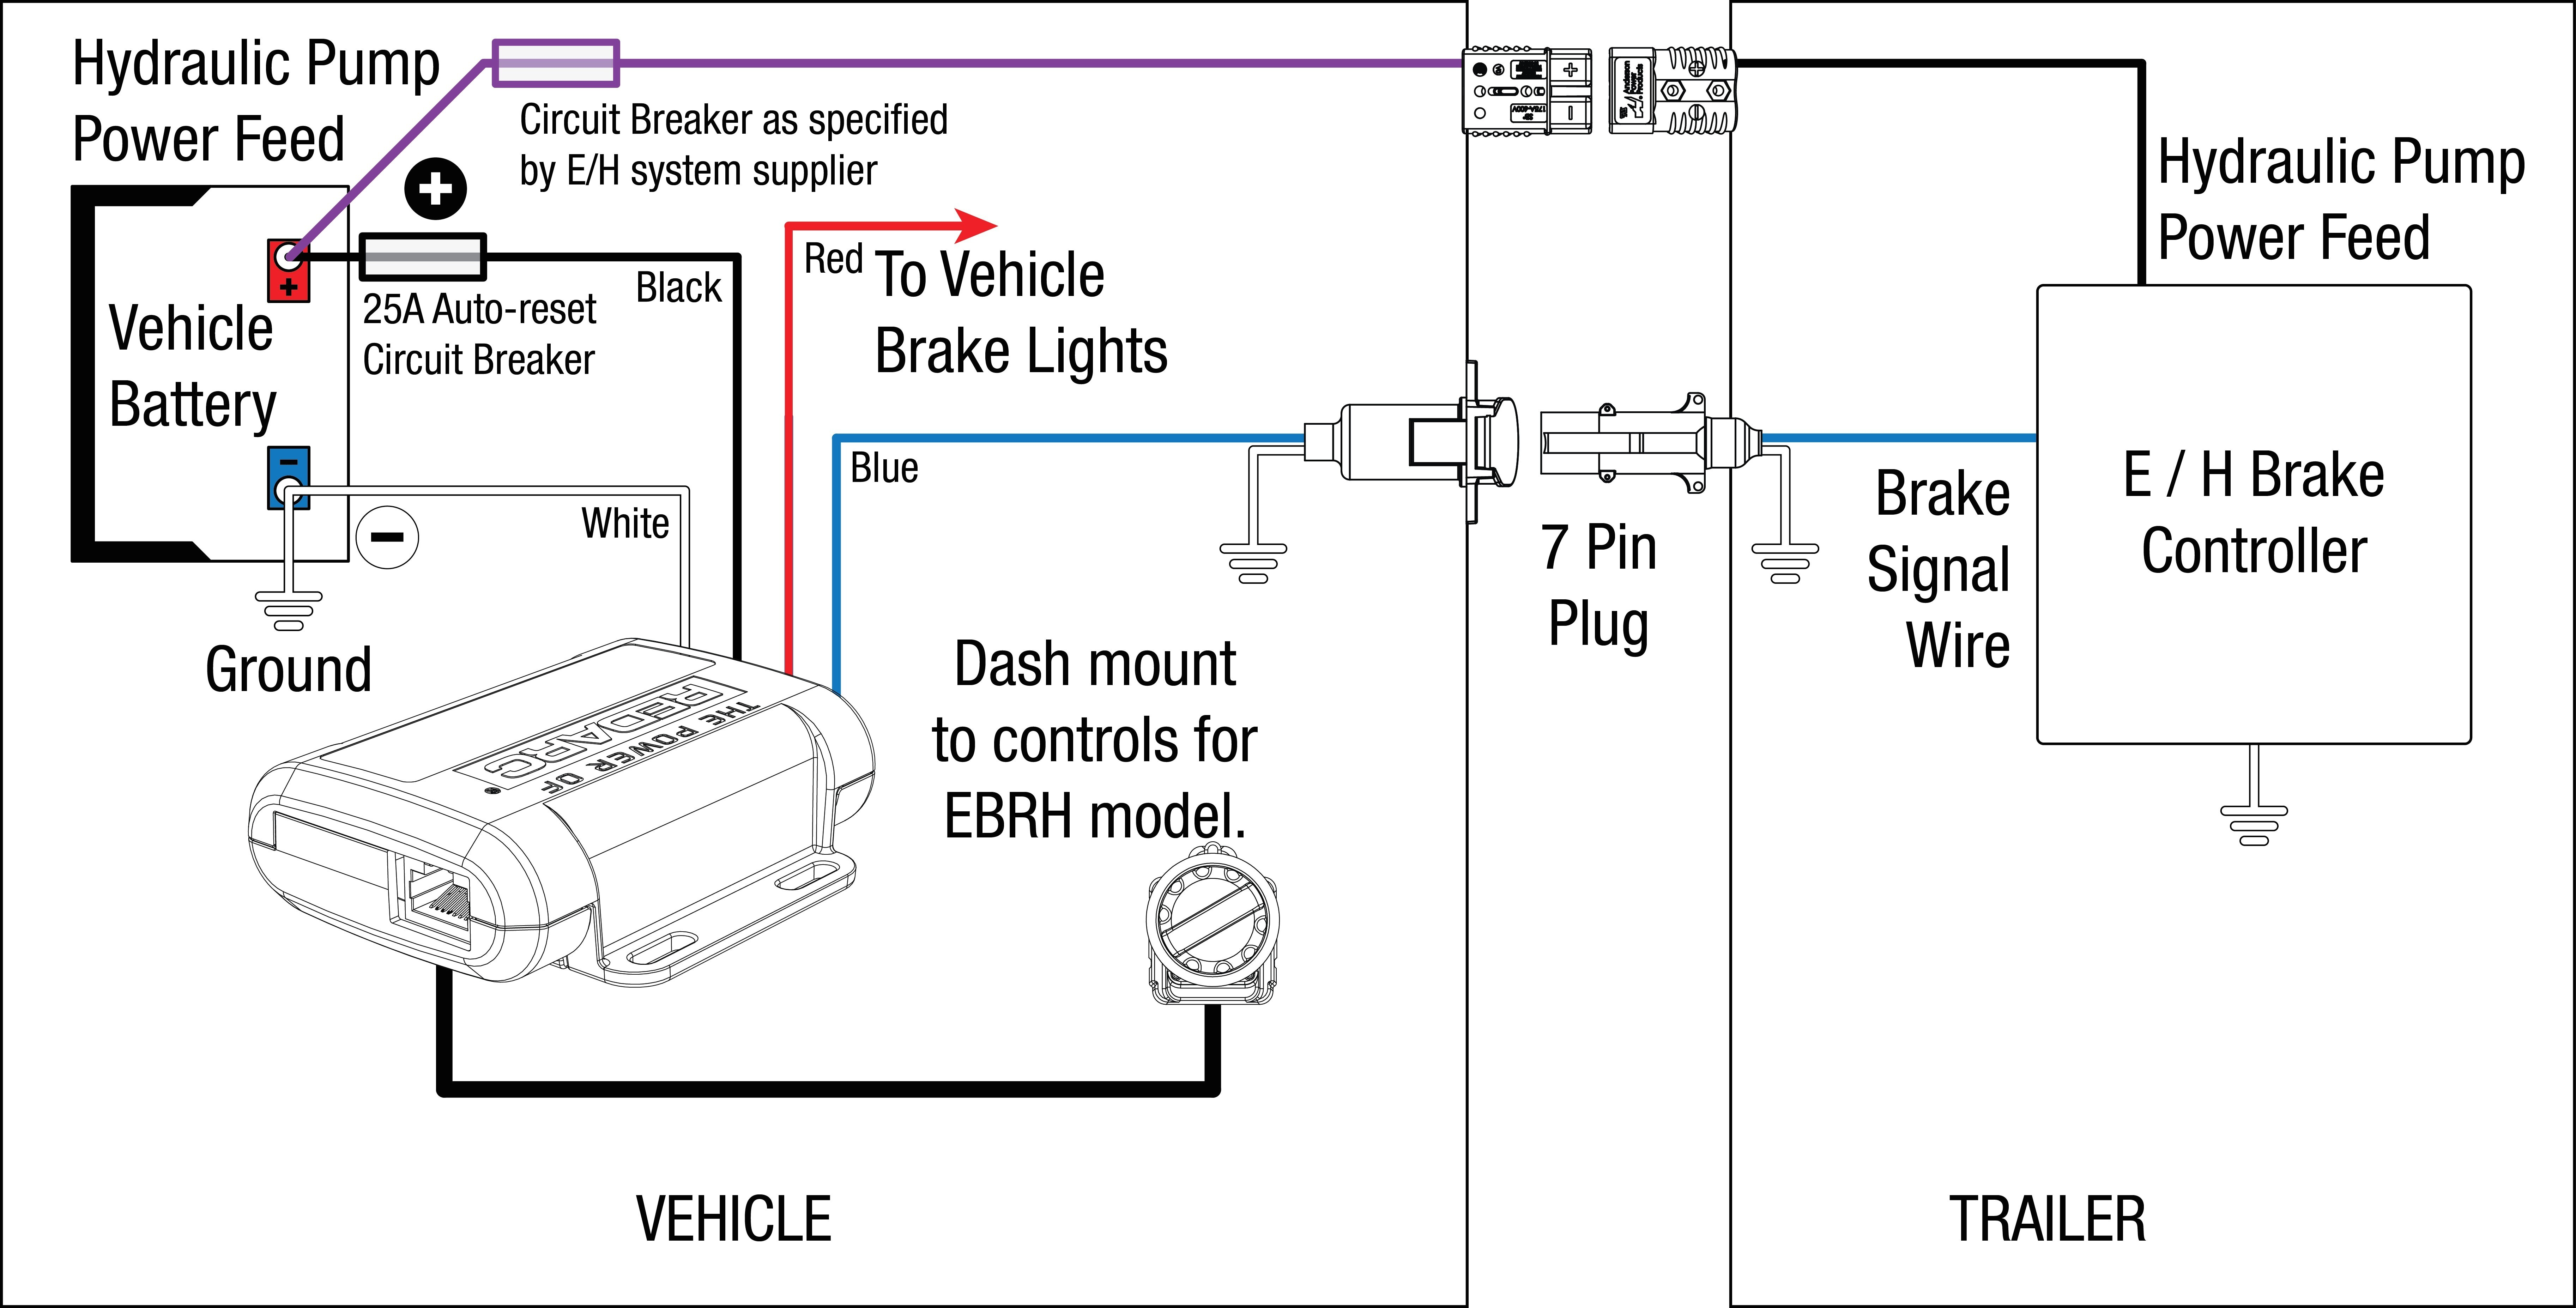 tekonsha brake controller wiring diagram wiring diagram image rh mainetreasurechest com Tekonsha Trailer Brake Controller Wiring Diagrams Voyager 9030 Wiring-Diagram